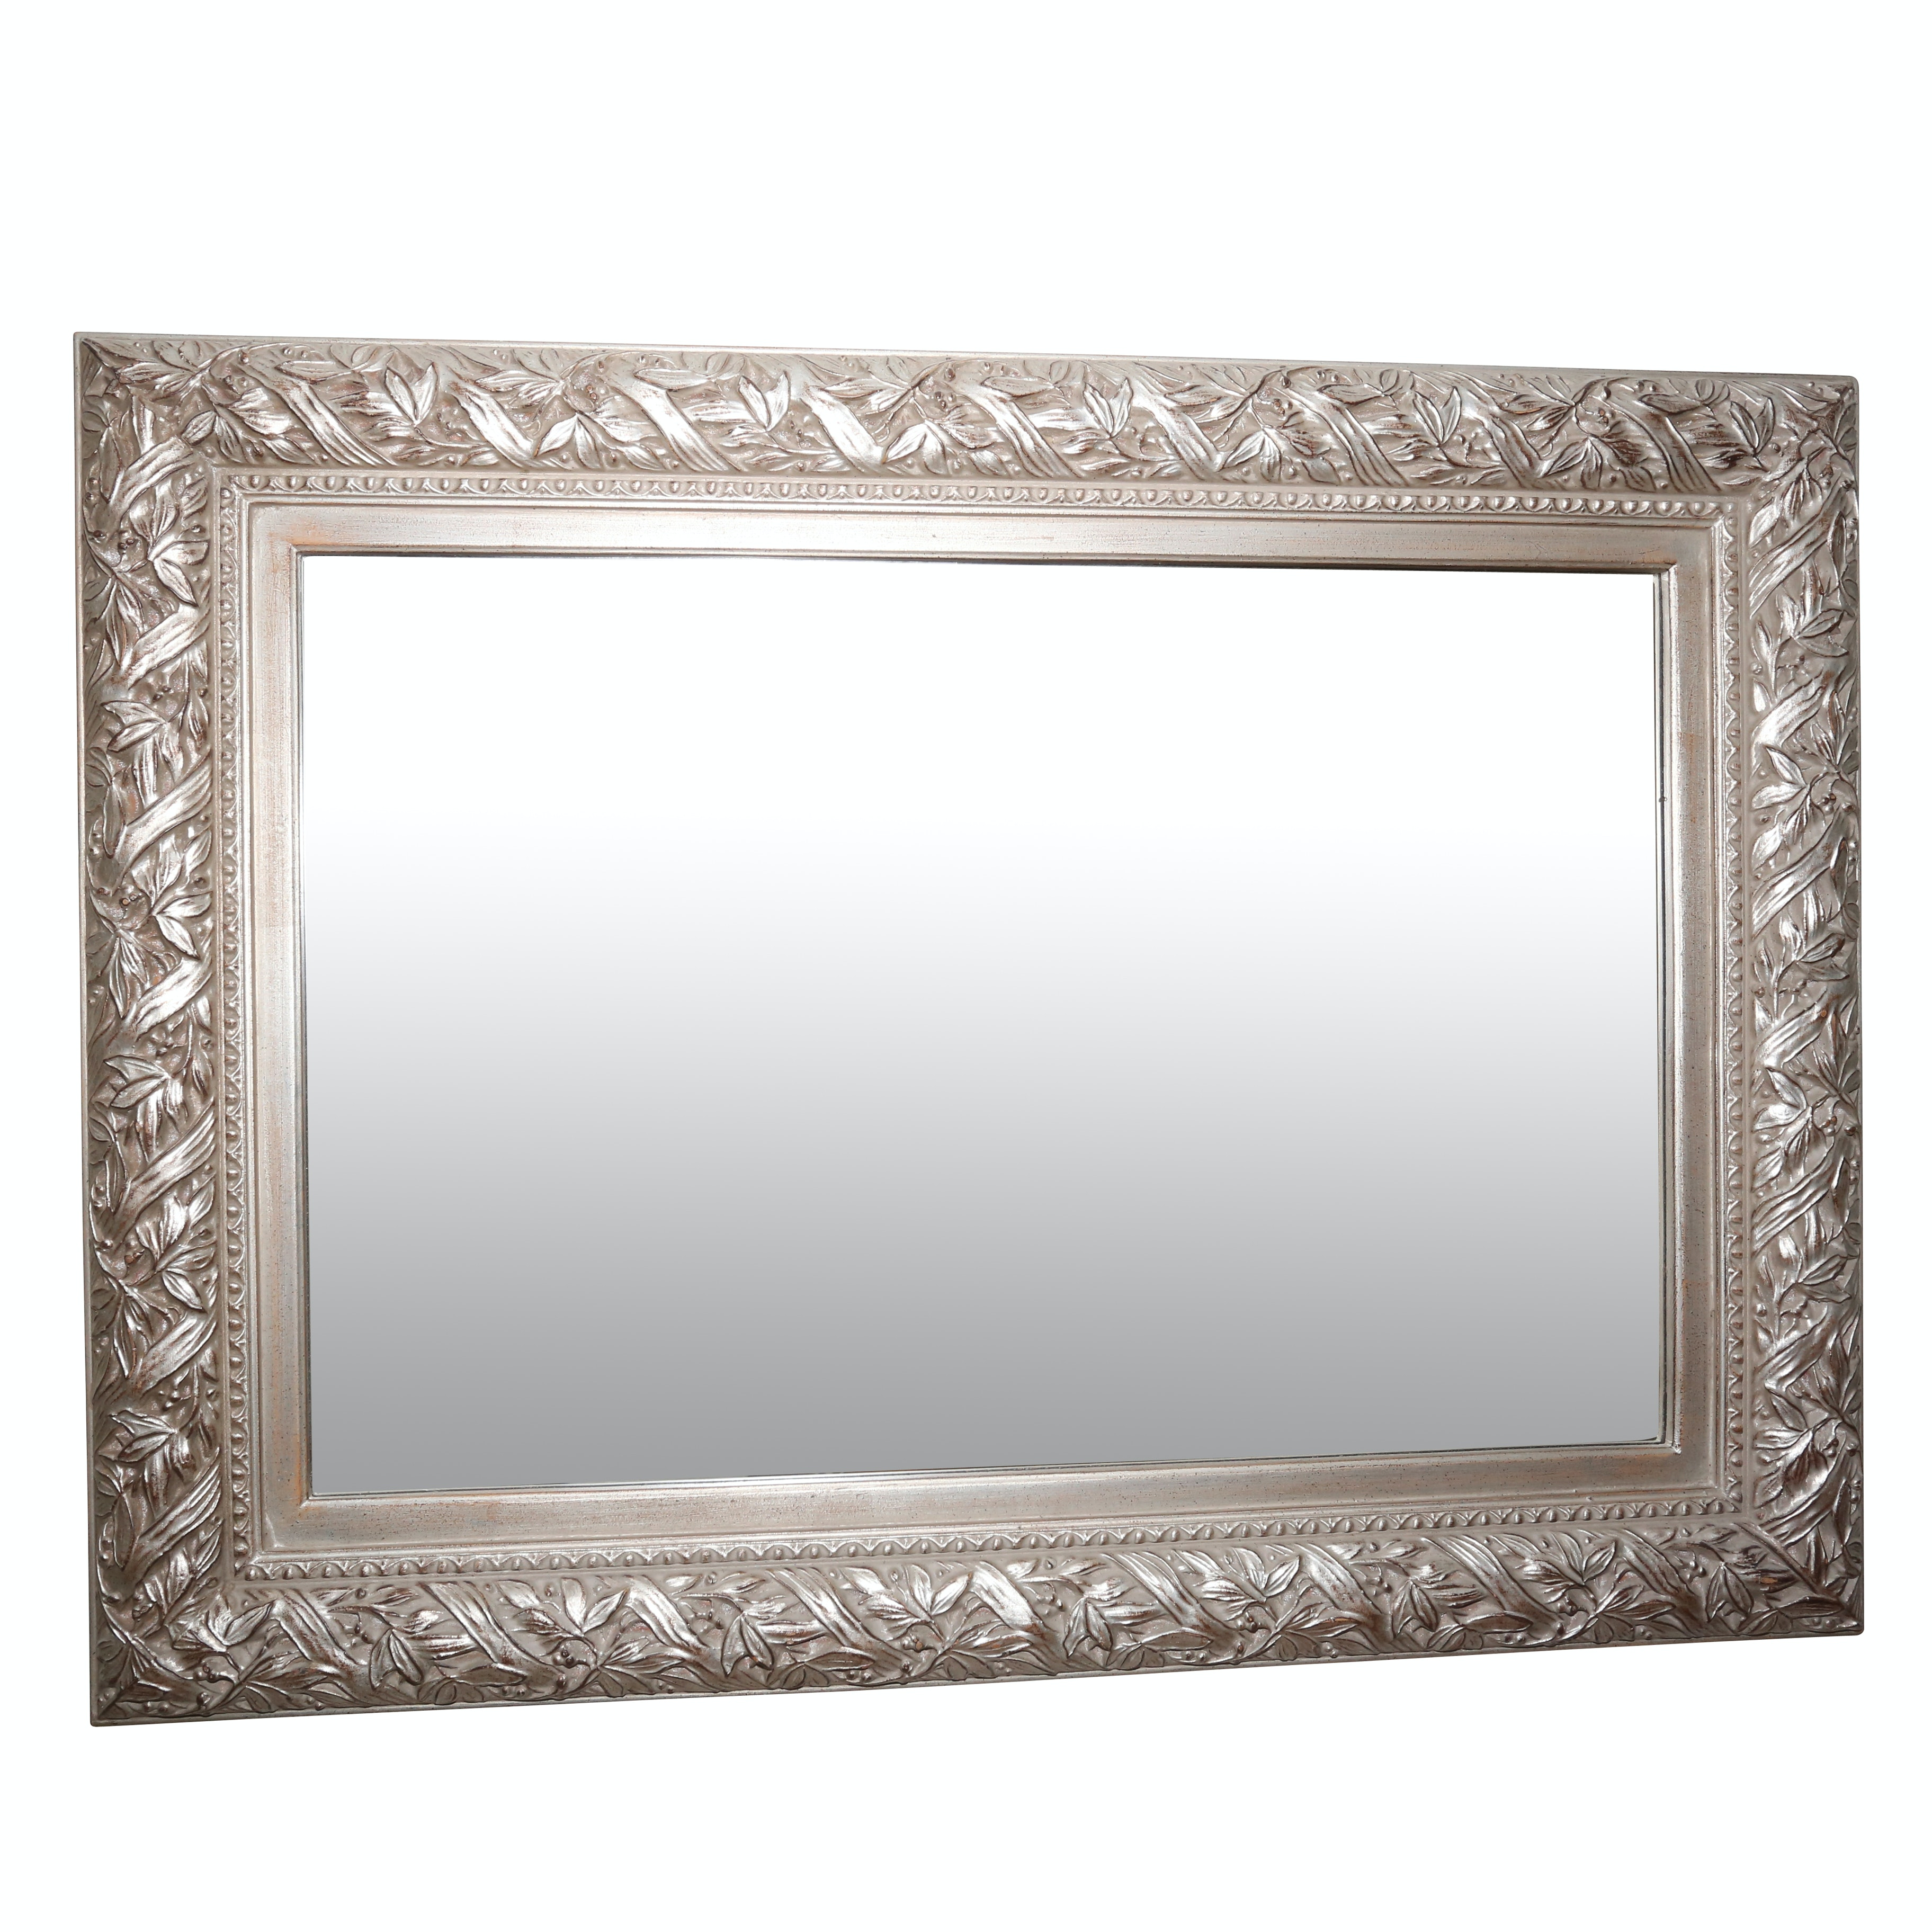 Silver-Toned Floral Motif Wood Framed Wall Mirror